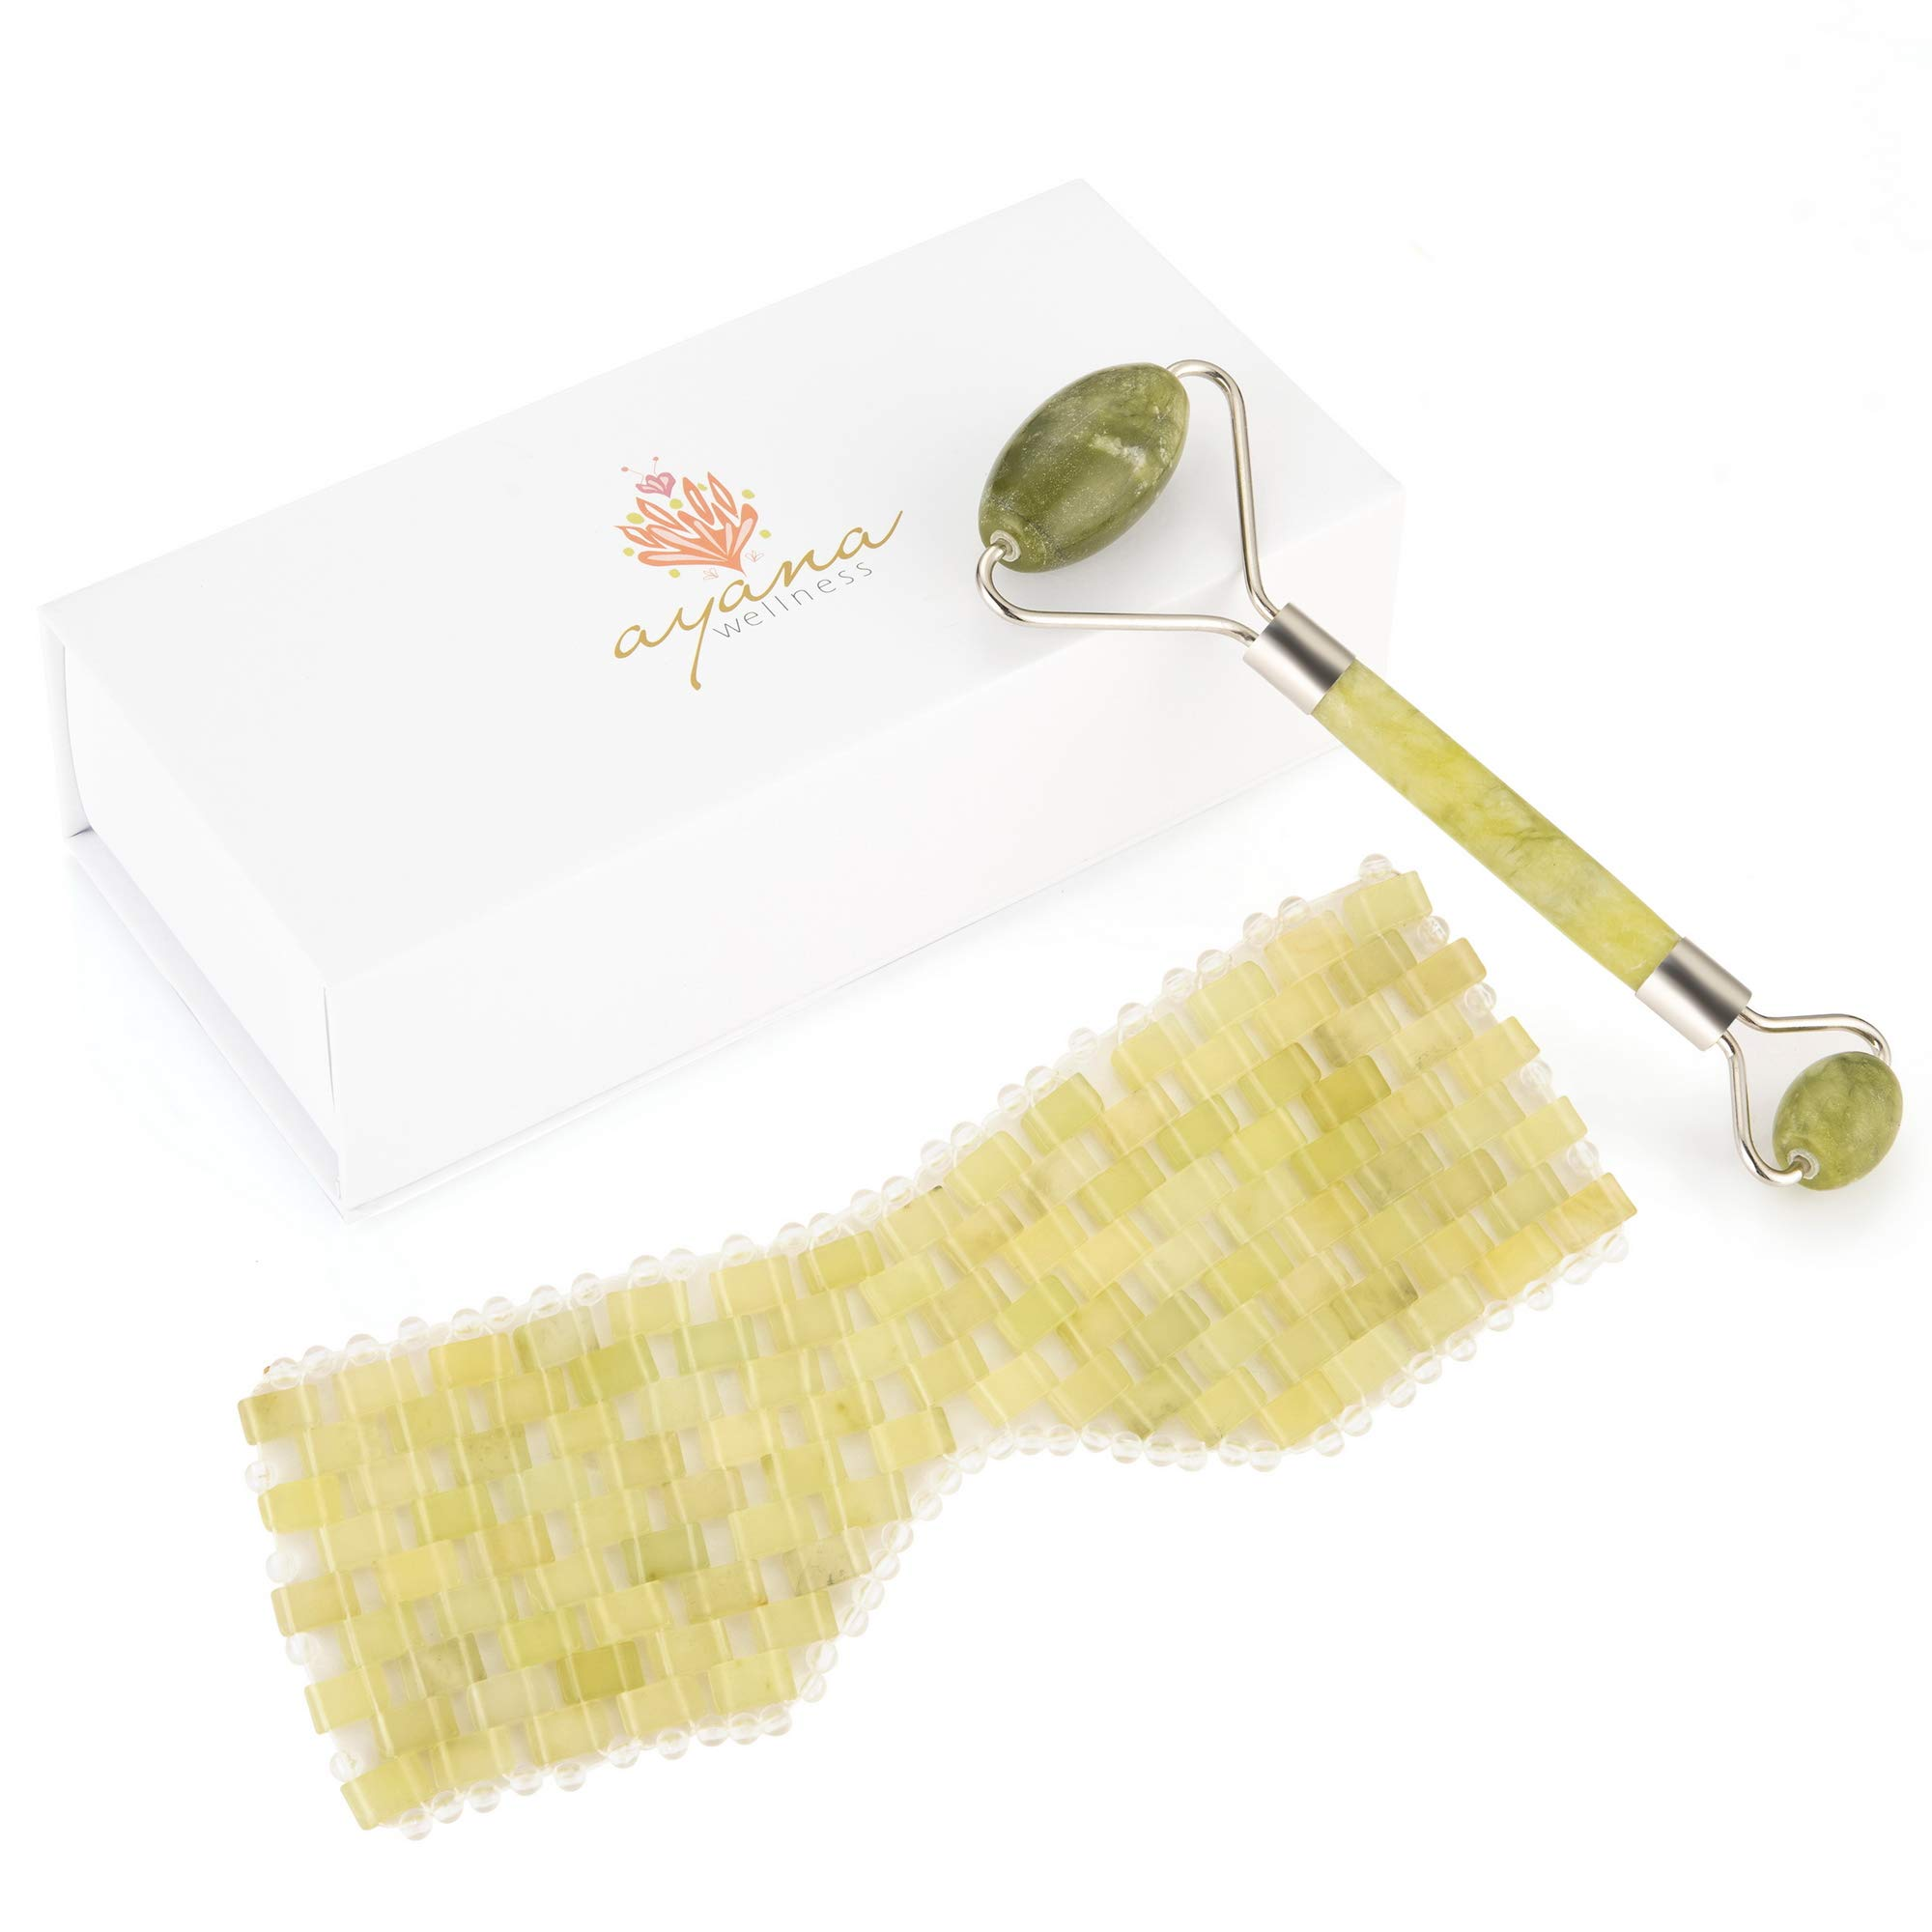 Green Jade Face Care Kit - Anti Aging Eye Mask With Jade Stones For Puffy Eyes and Dark Circles - Gua Sha Facial Roller for Lymphatic Drainage - Look Younger and Fresher - Enjoy Gentle Relaxation